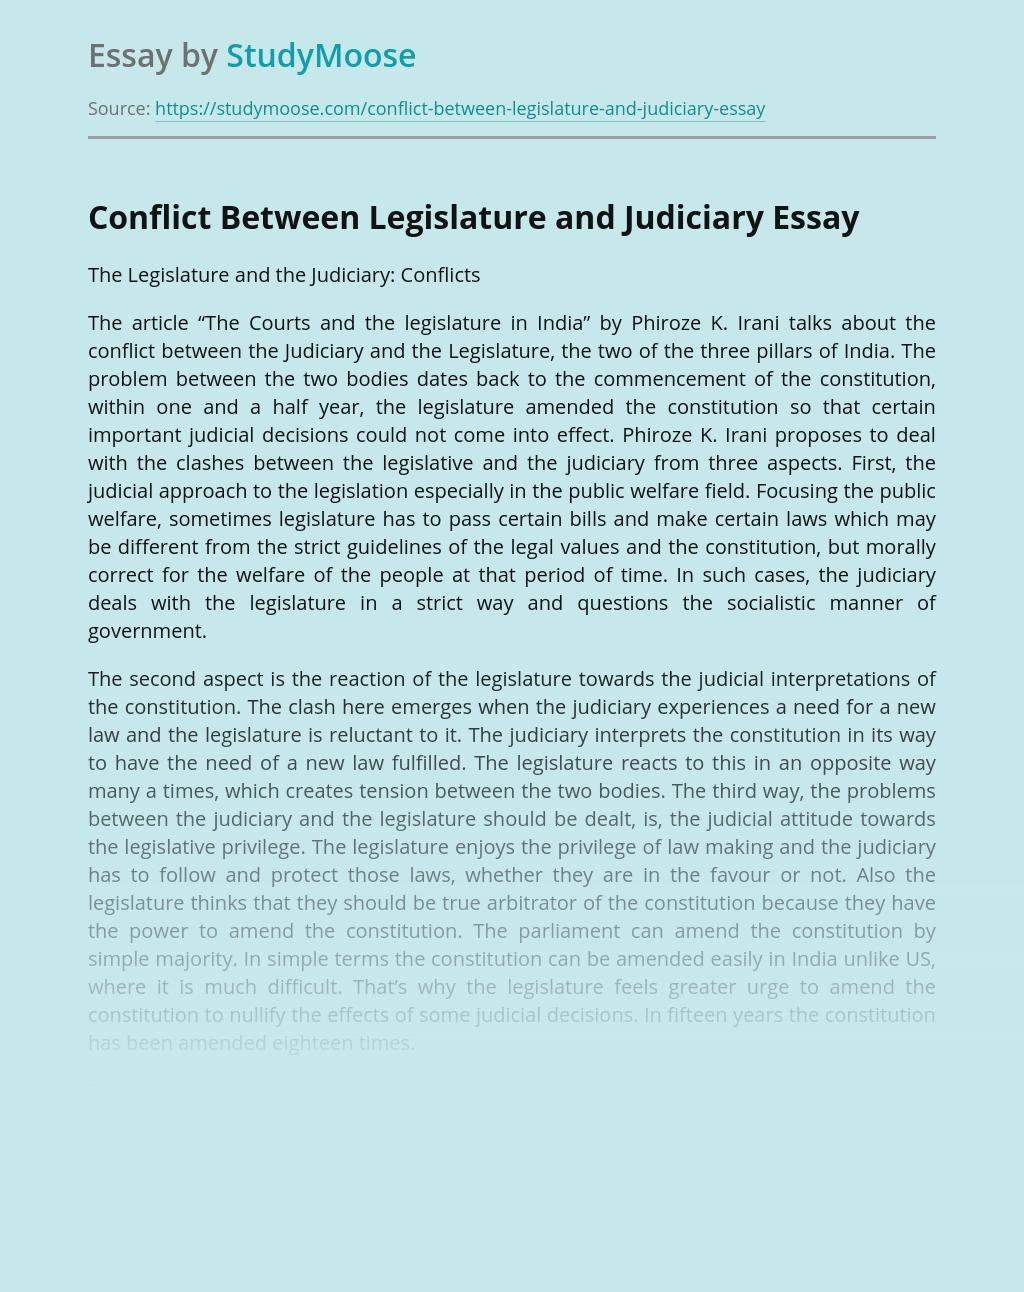 Conflict Between Legislature and Judiciary